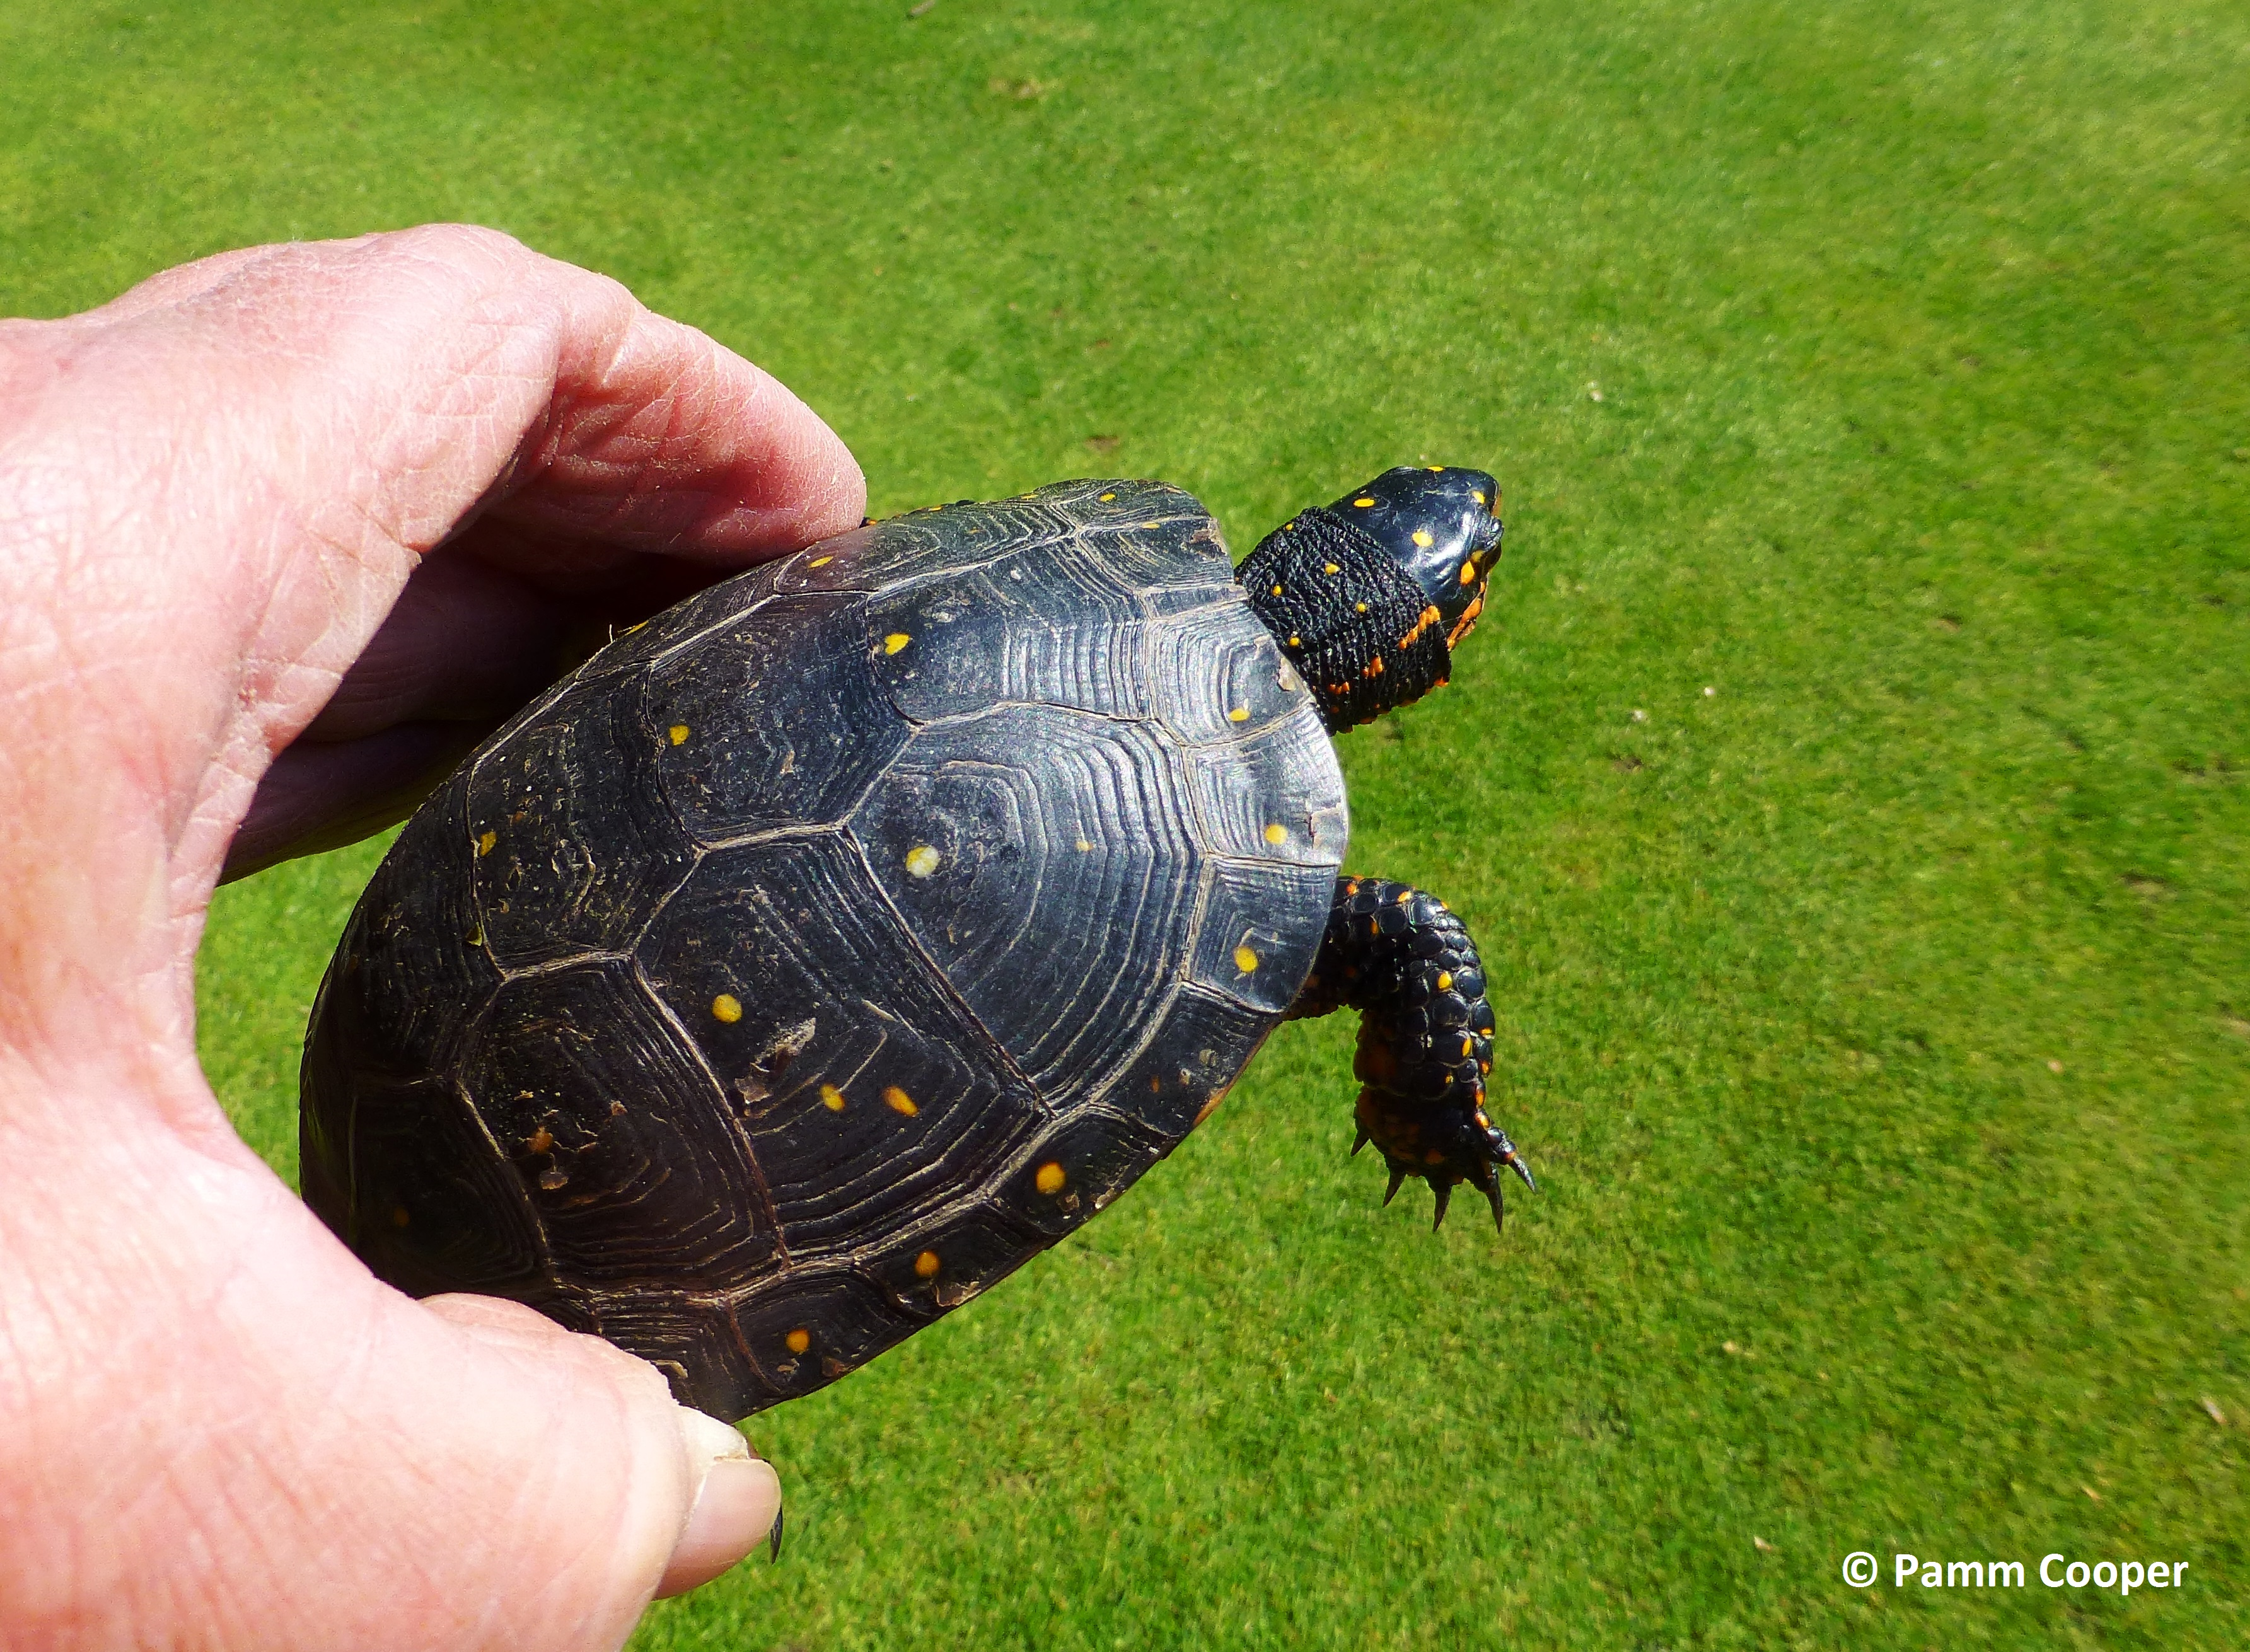 spotted turtle saved from the mower